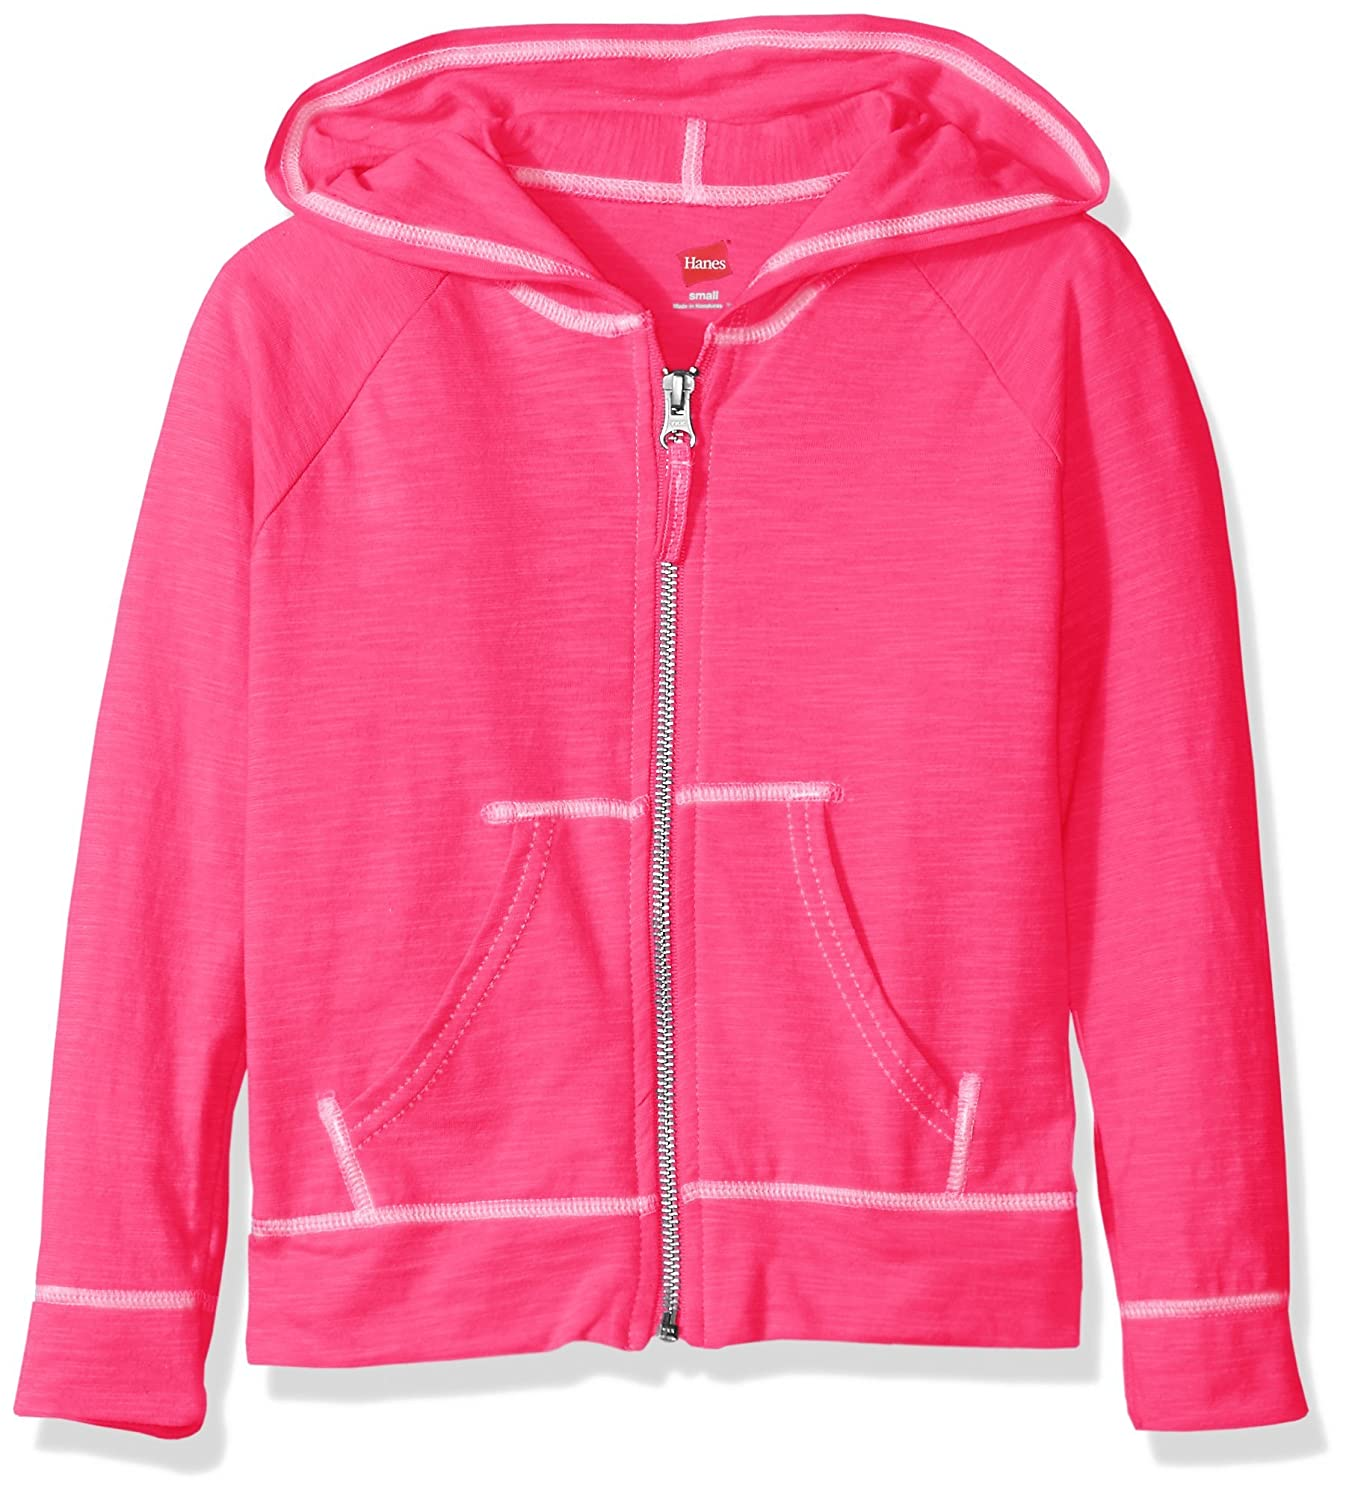 Hanes Girls Slub Jersey Full Zip Jacket Hanes Women' s Activewear K208